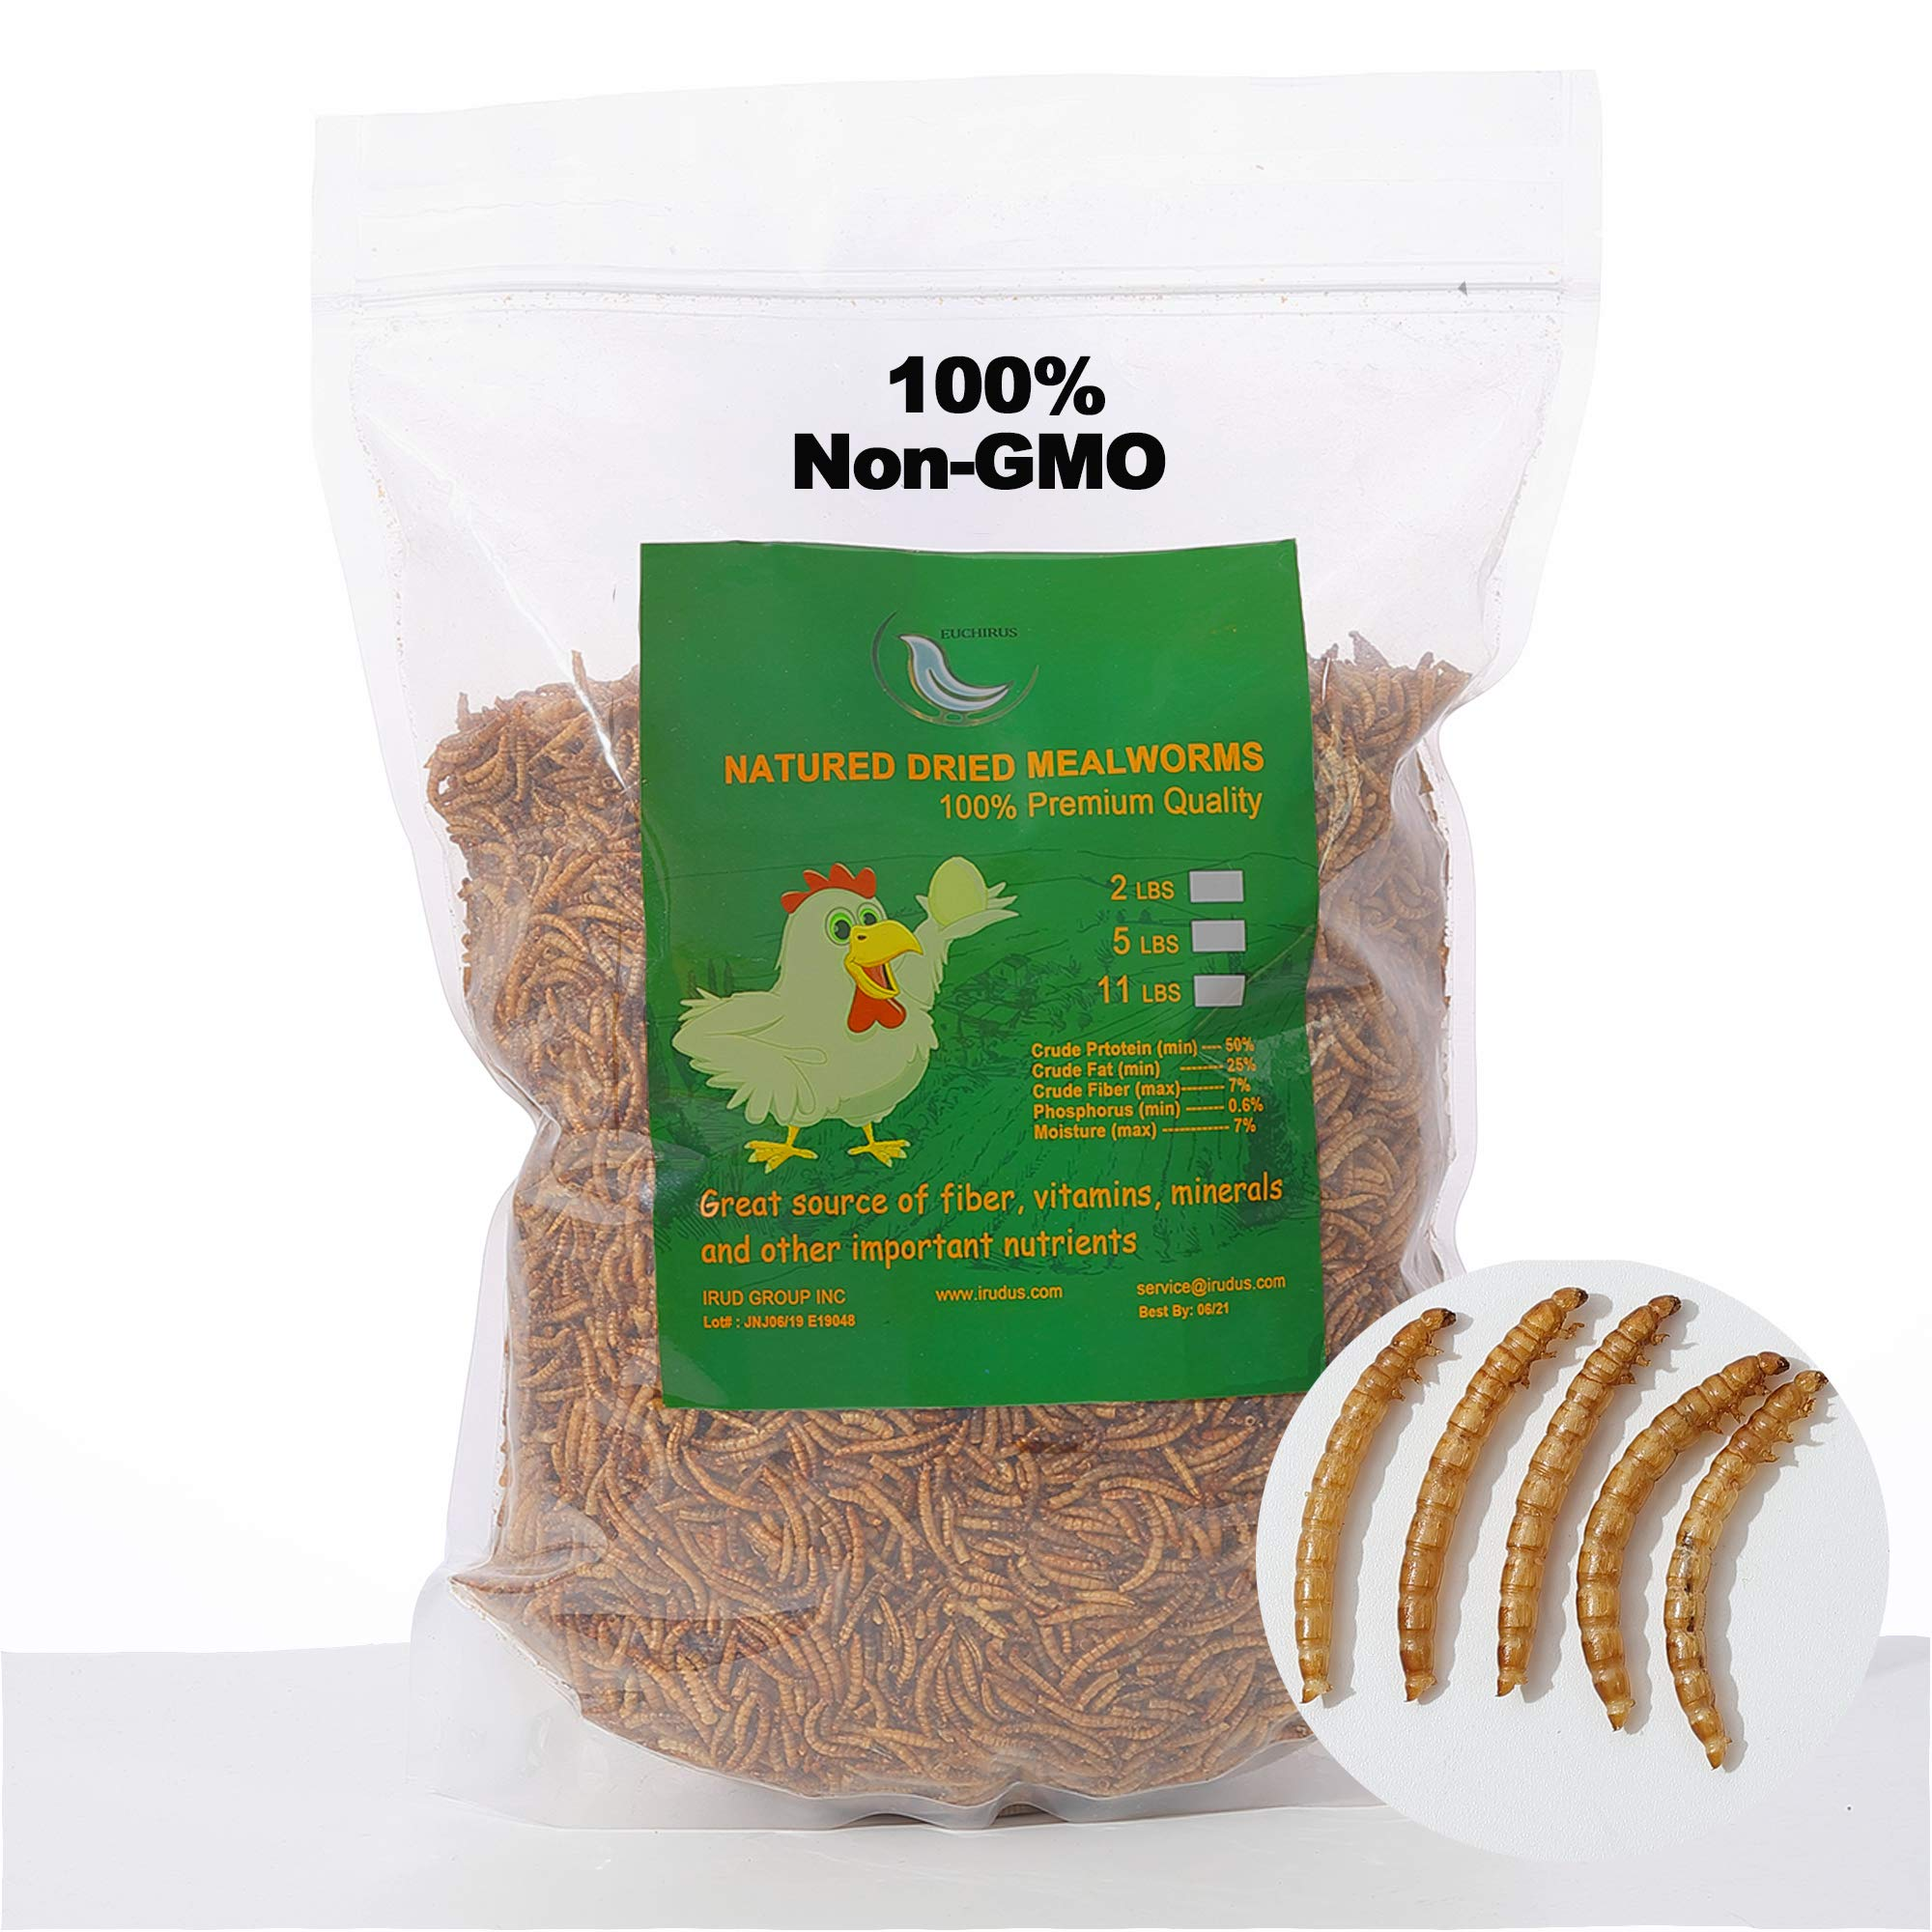 WAMSOFT Non-GMO 11lb Big Size Dried Mealworms,Proteins up to 53% ,Complete Dehydration,Perfect for Wild Bird Chicken Fish by WAMSOFT